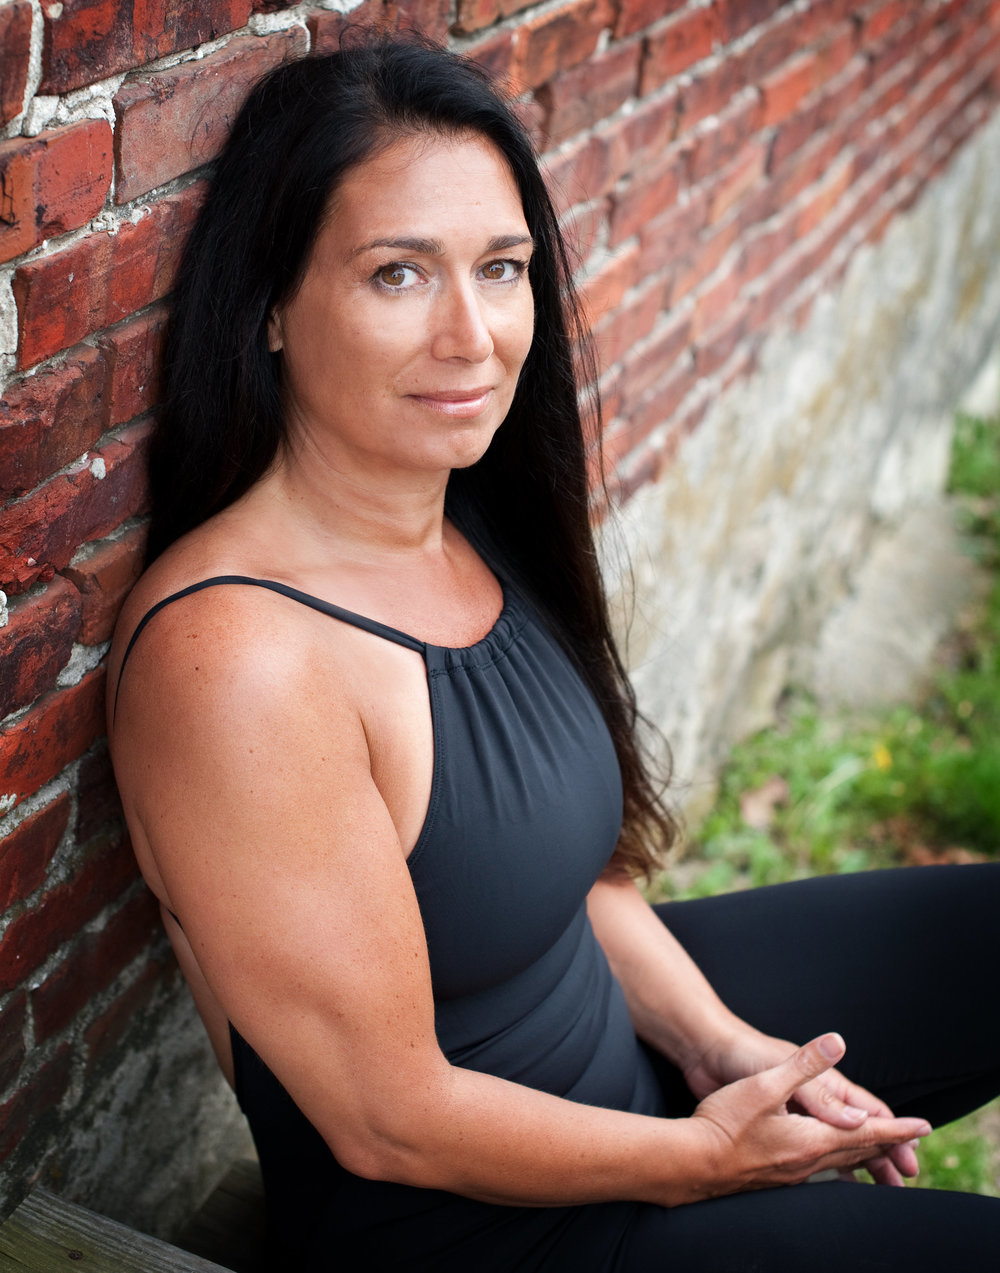 9:15am to 10:15am - Tribal Shakti Flow with Wanda Gilhool, SHINE Power Yoga